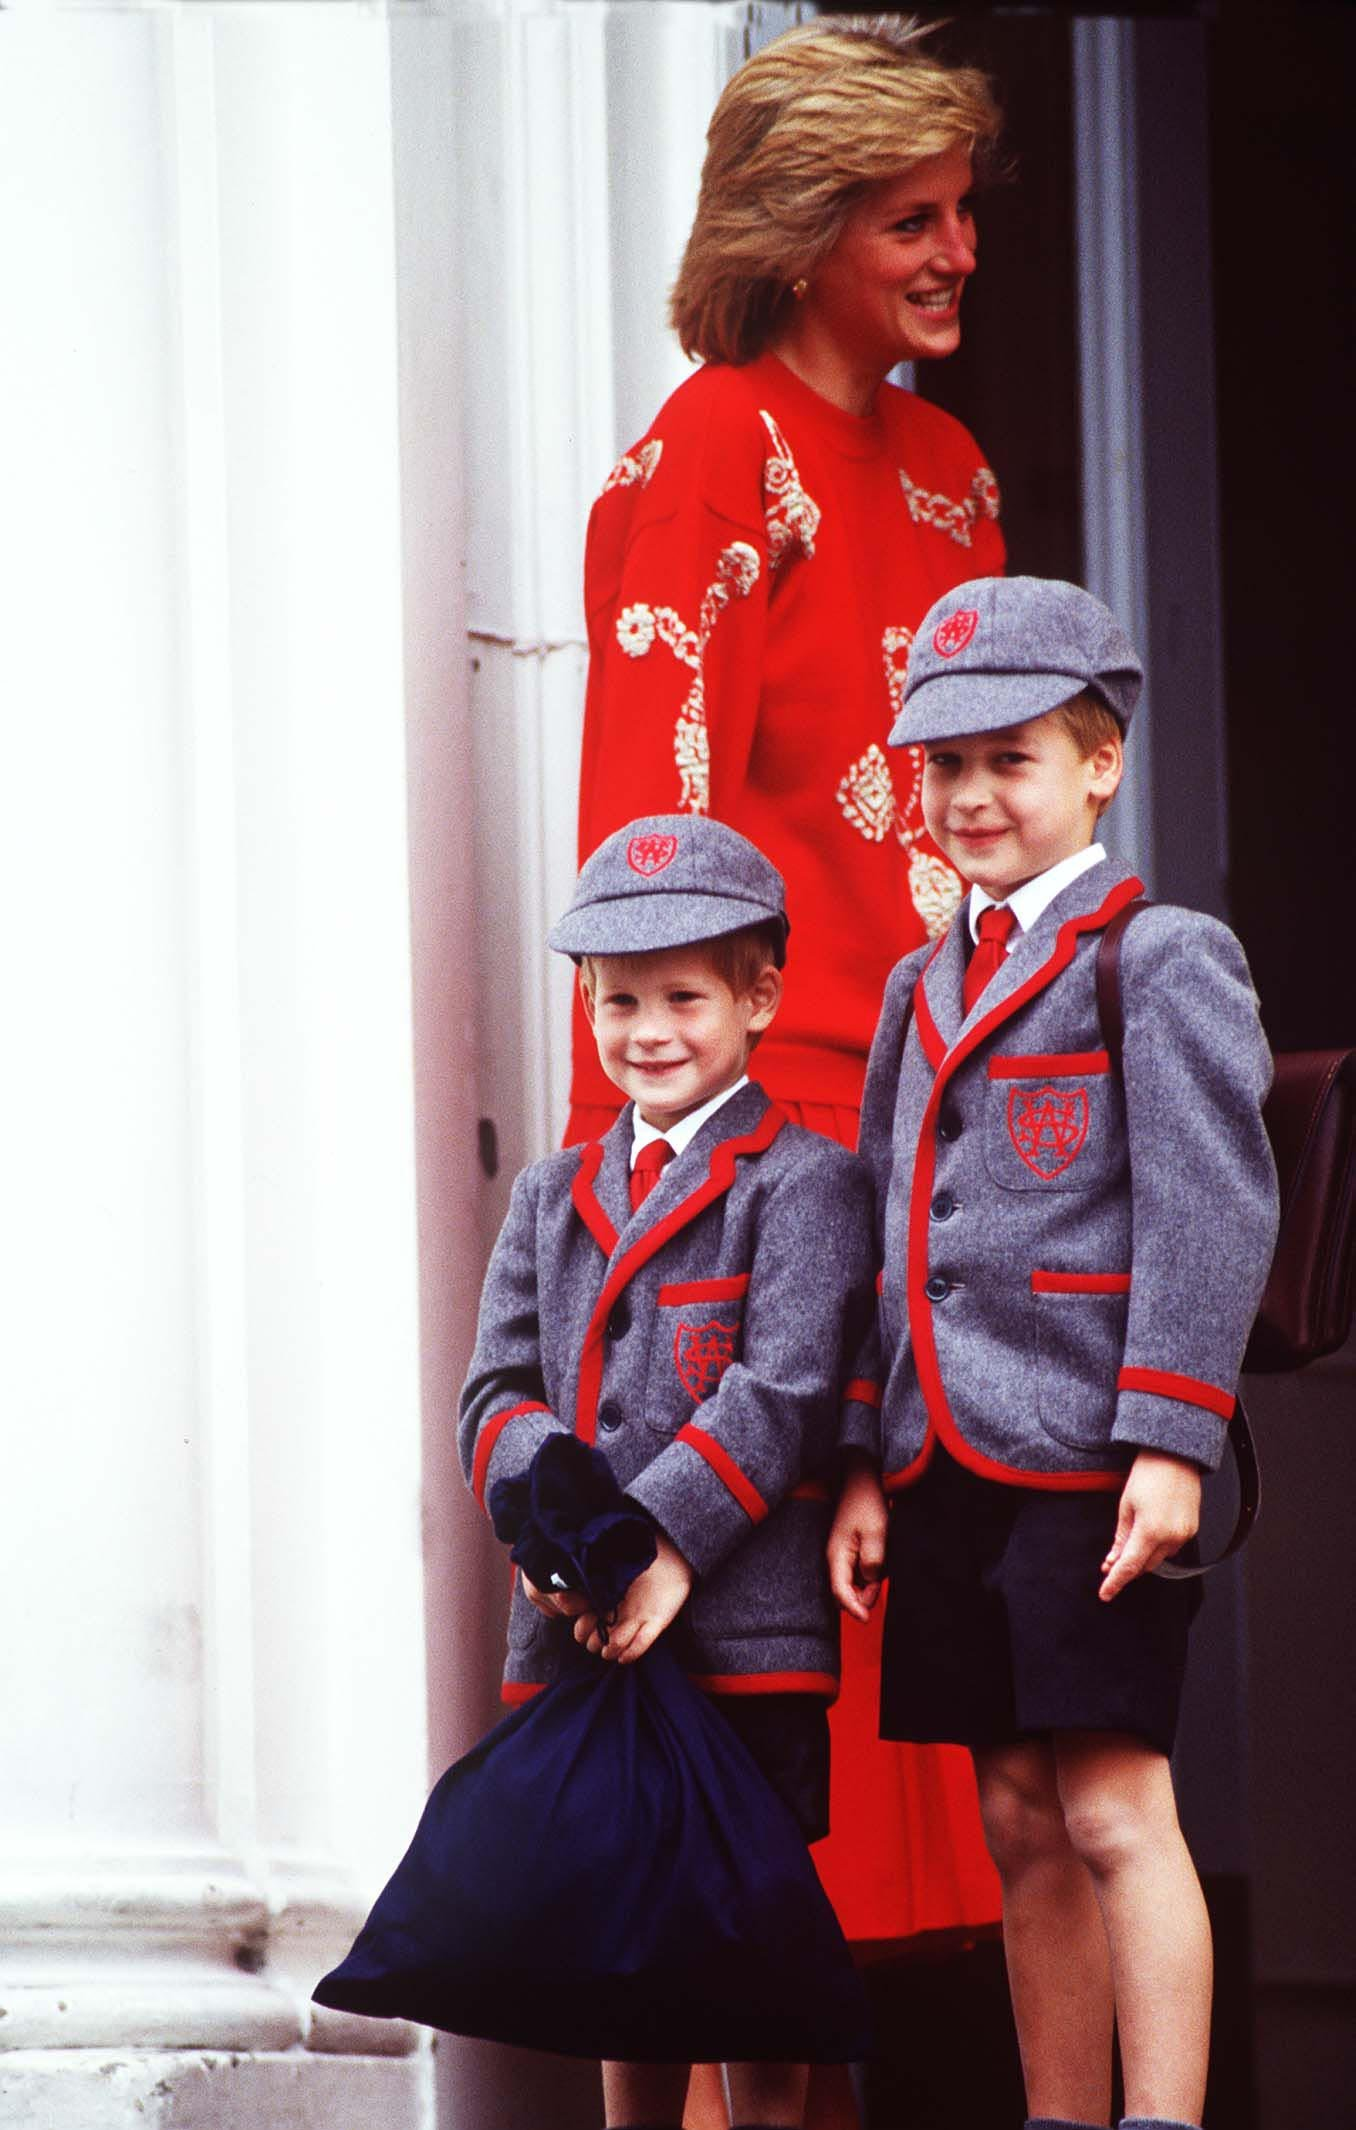 HRH PRINCESS OF WALES with her sons HRH PRINCE HARRY and Right: HRH PRINCE WILLIAM Outside Wetherby School in London on Prince Harry's first day, Image: 22089197, License: Rights-managed, Restrictions: For queries call UPPA + 44 (0)20 7421 6000, Model Release: no, Credit line: Profimedia, UPPA News